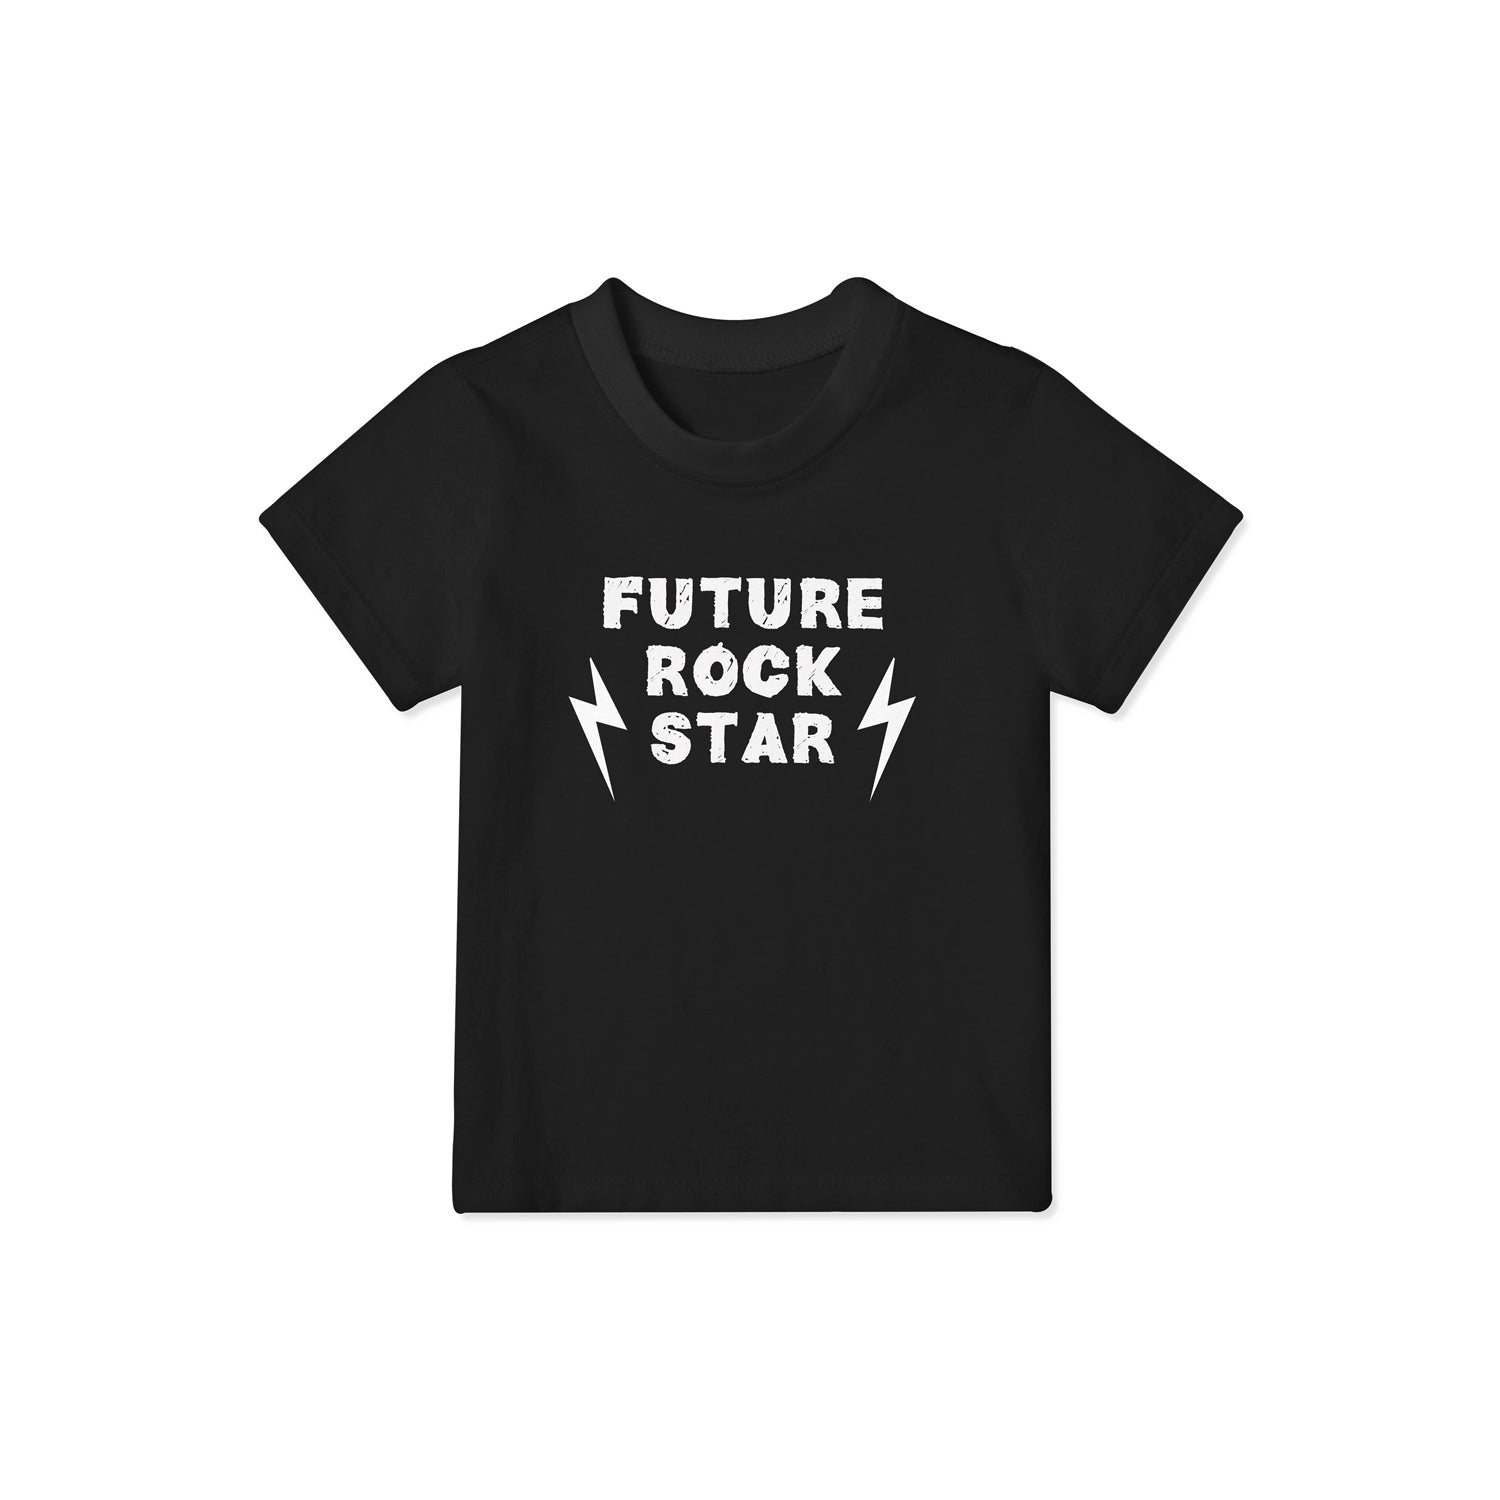 black t shirt in child size that reads 'future rock star'